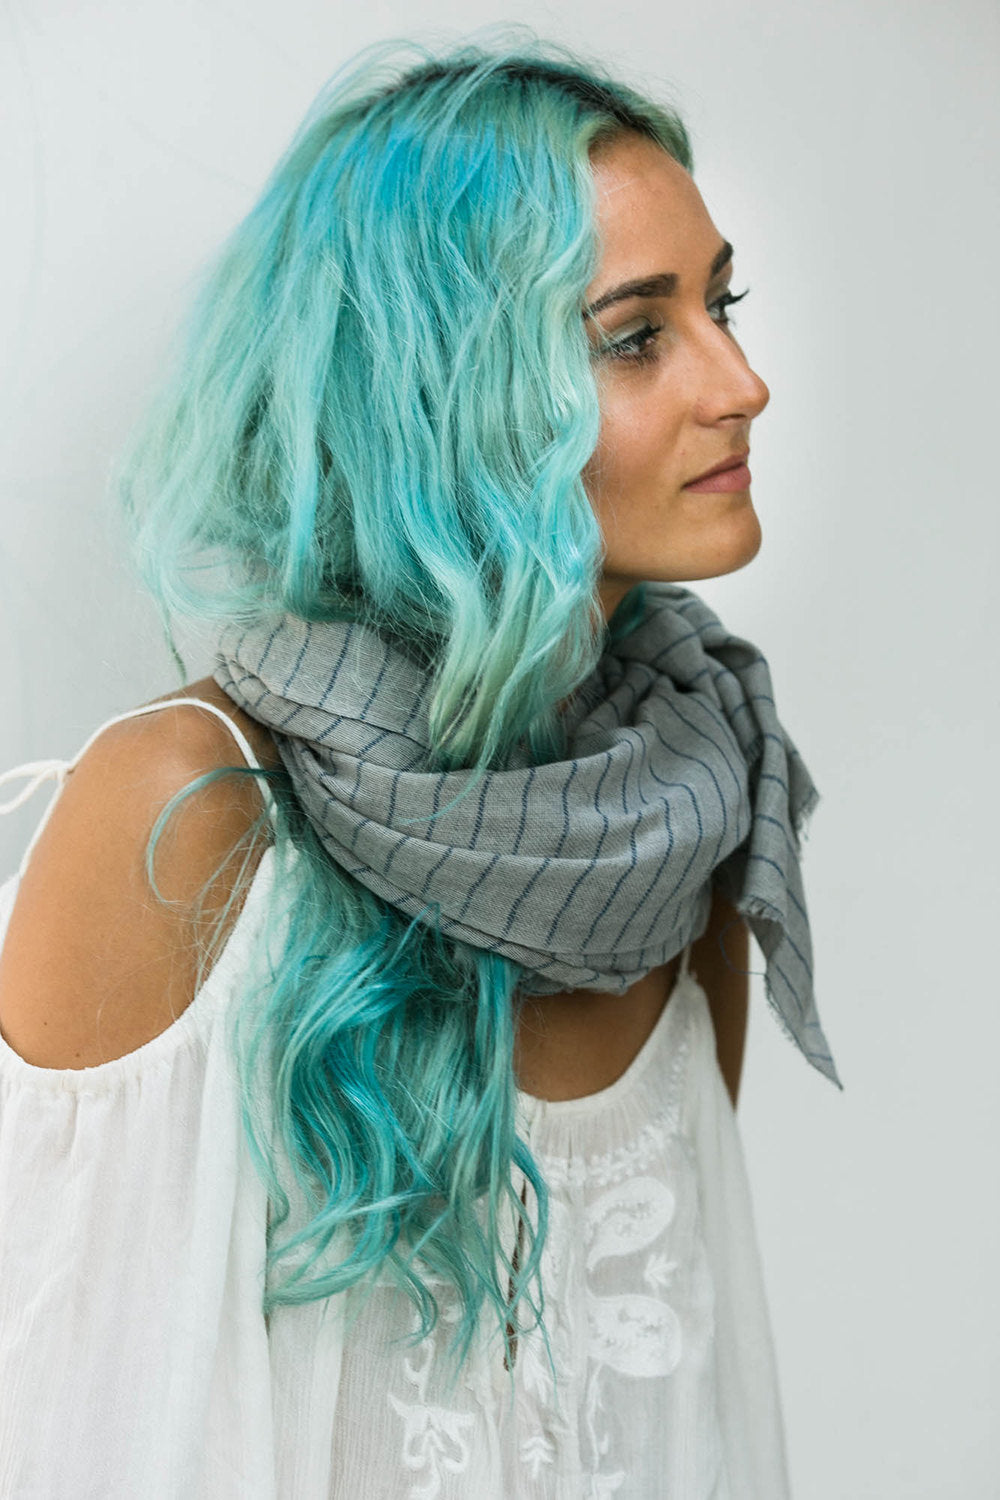 GONNI SCARF LIGHT GREY AND DARK GREY